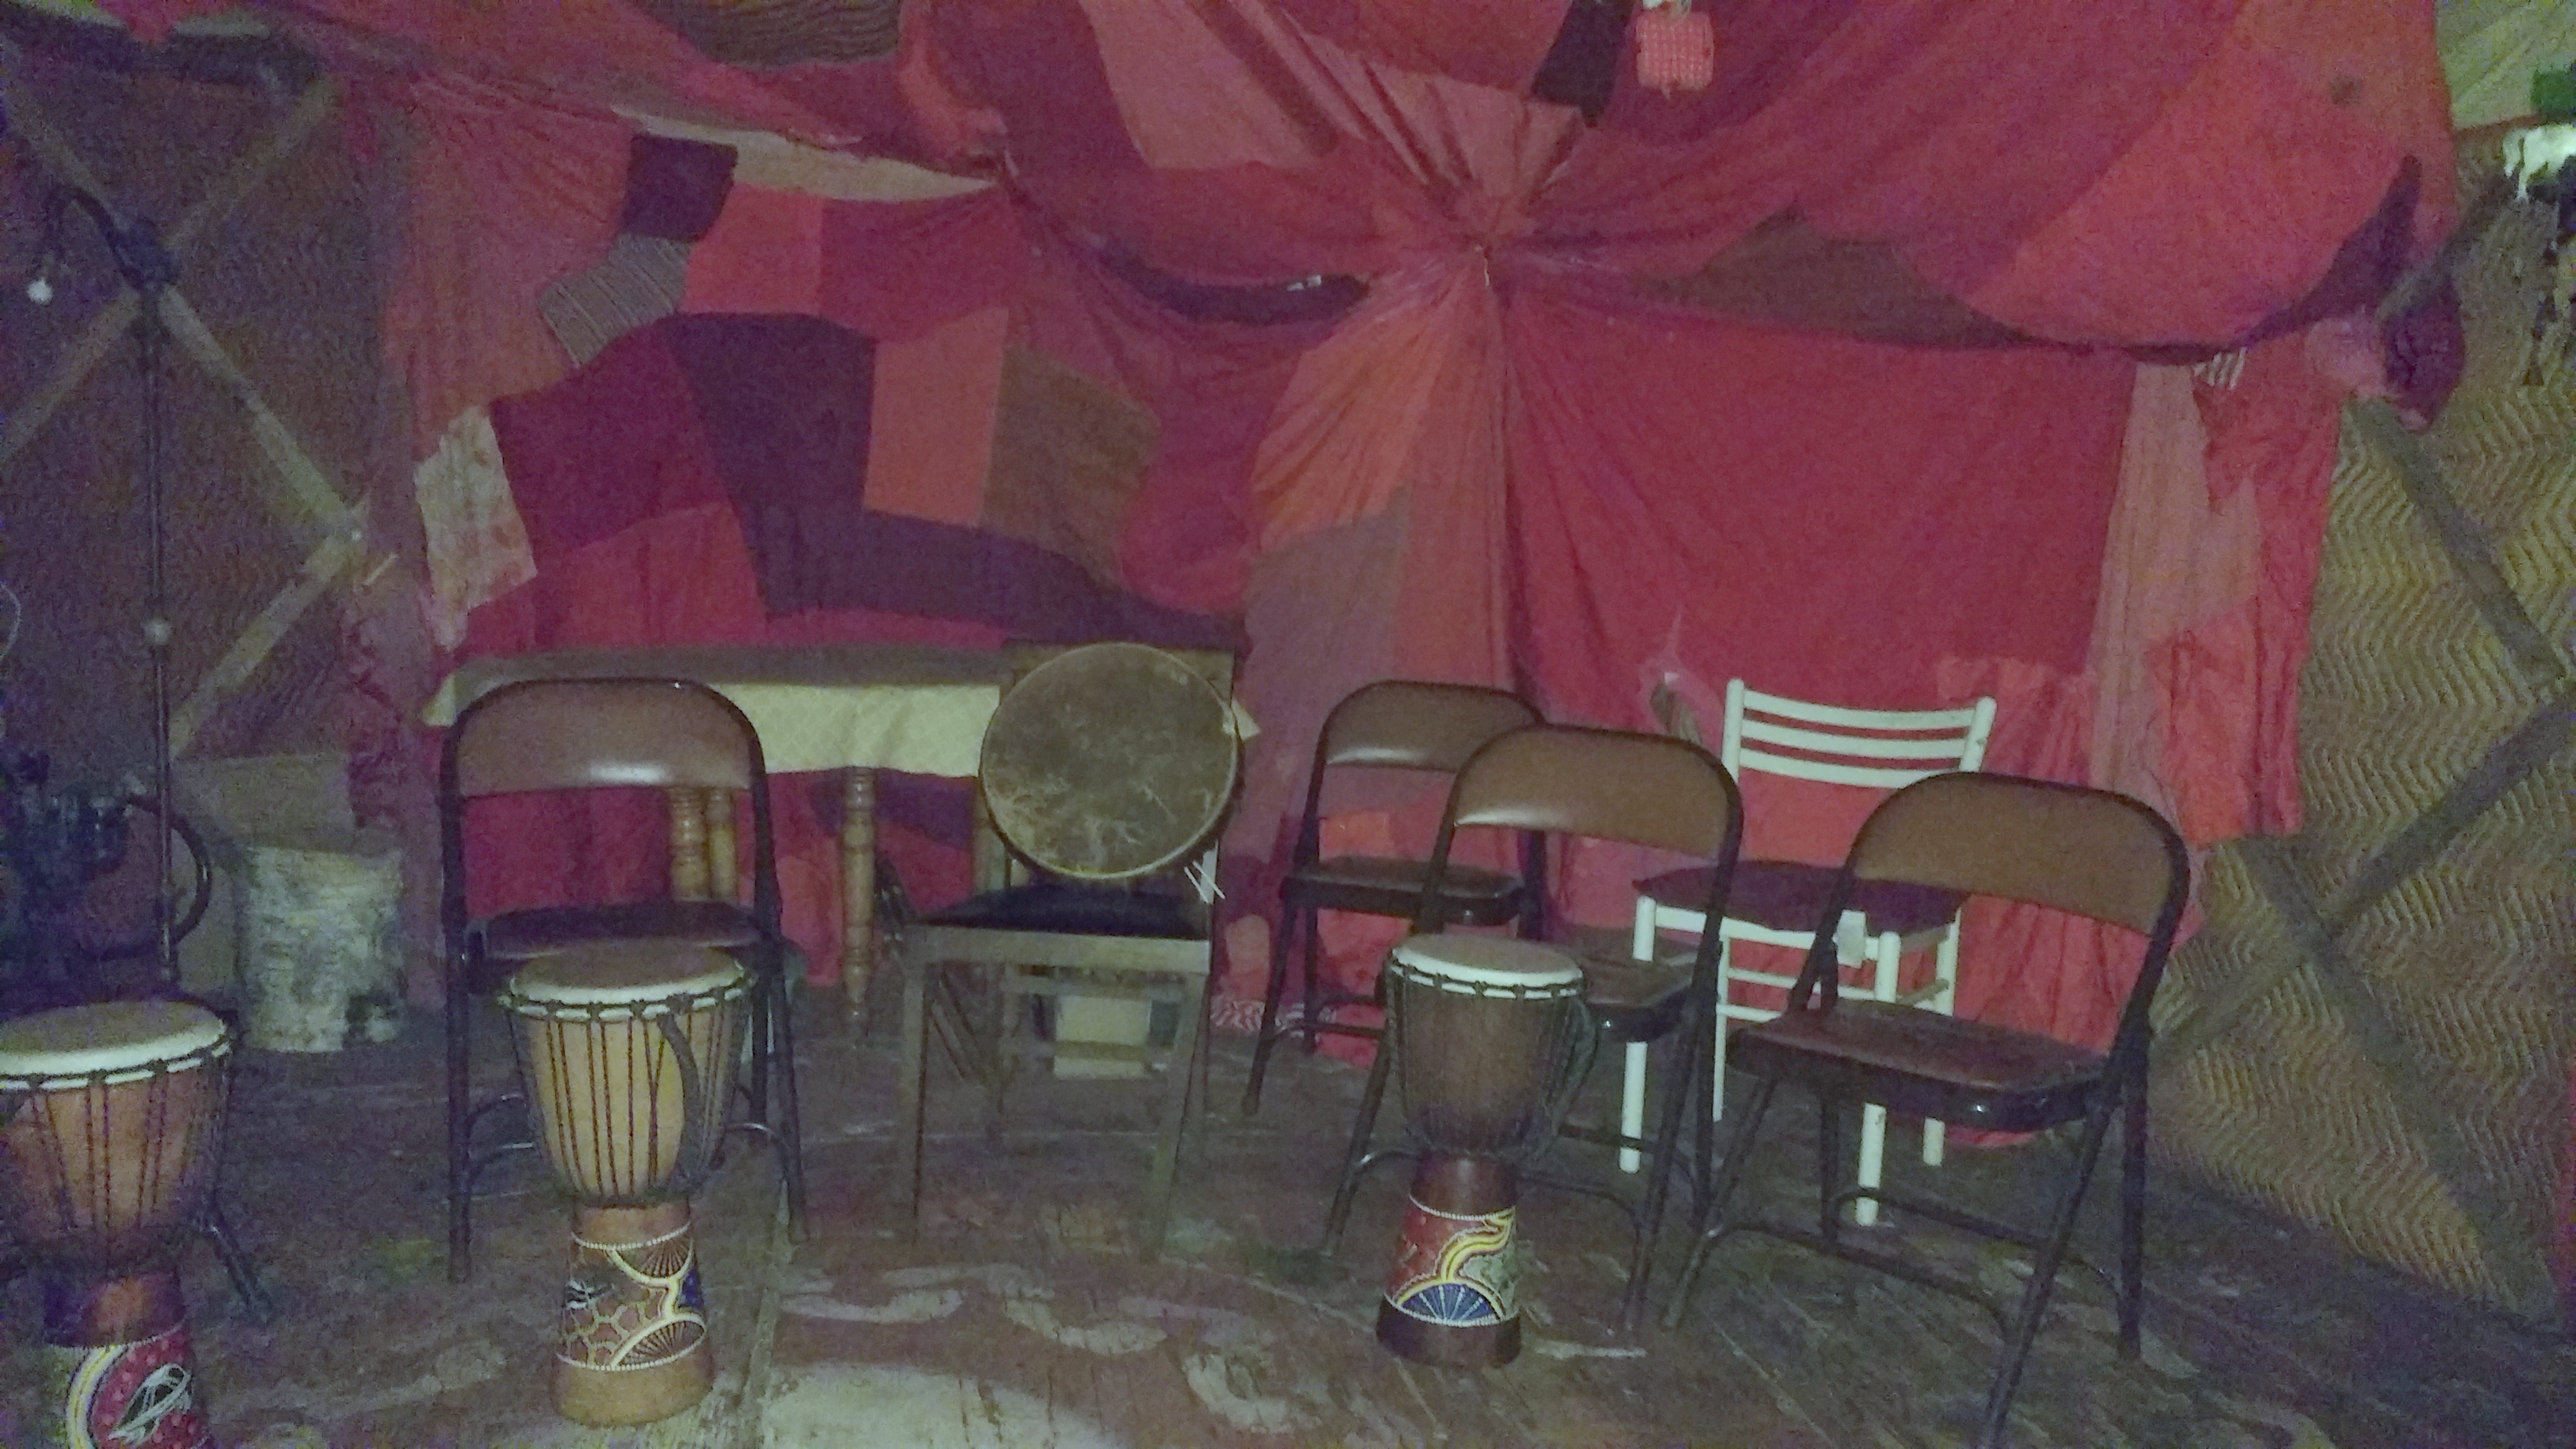 reddy for women's drum circle